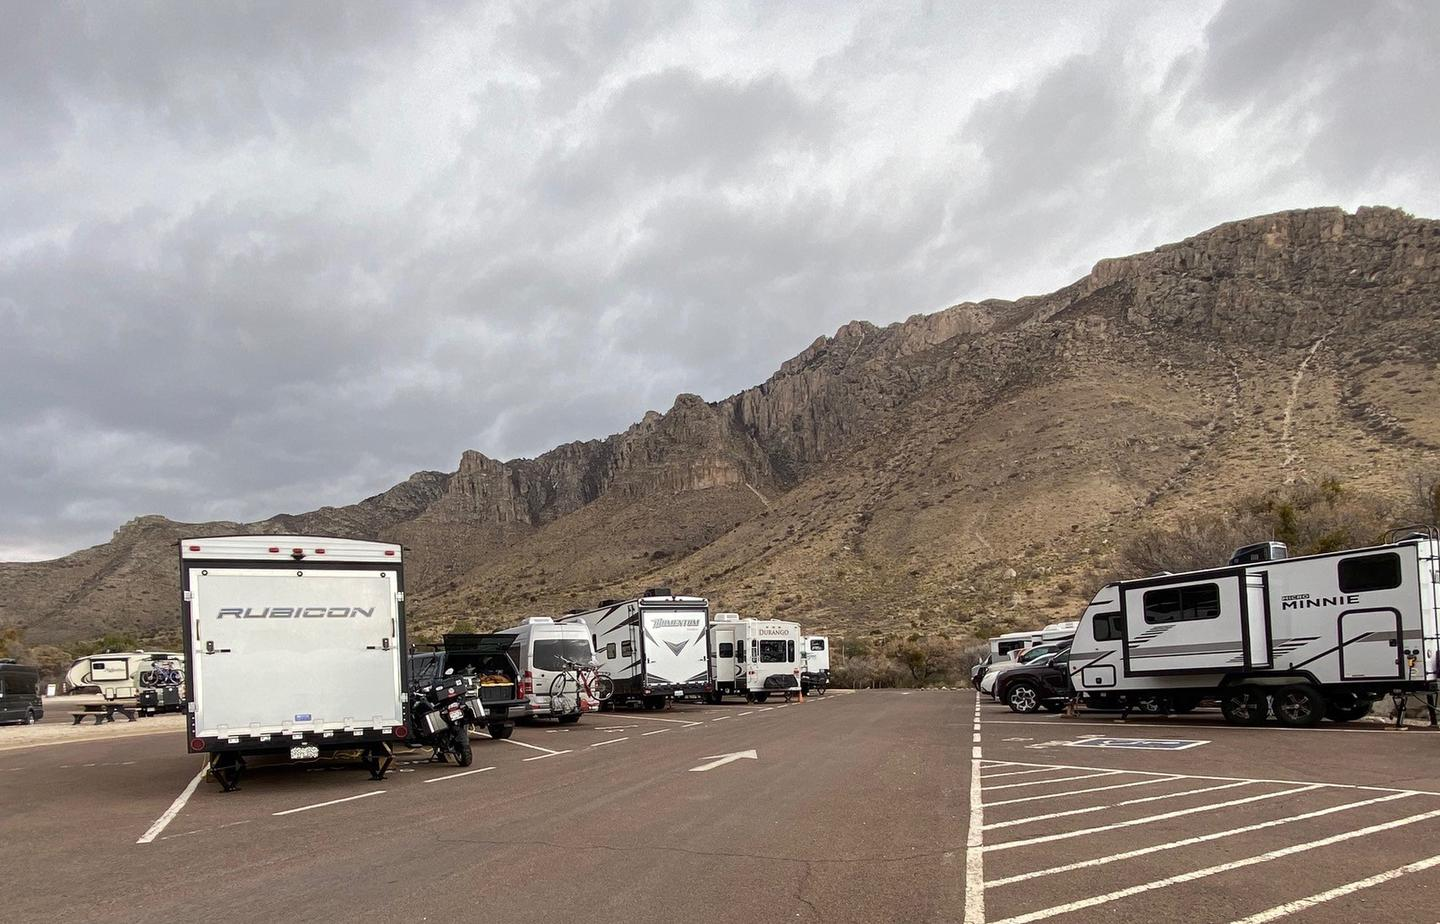 Overview of RV camping, sites 21-30 when near capacity.  Vehicles are parked in tight rows with little spacing on either side.Overview of RV camping, sites 21-30 when near capacity.